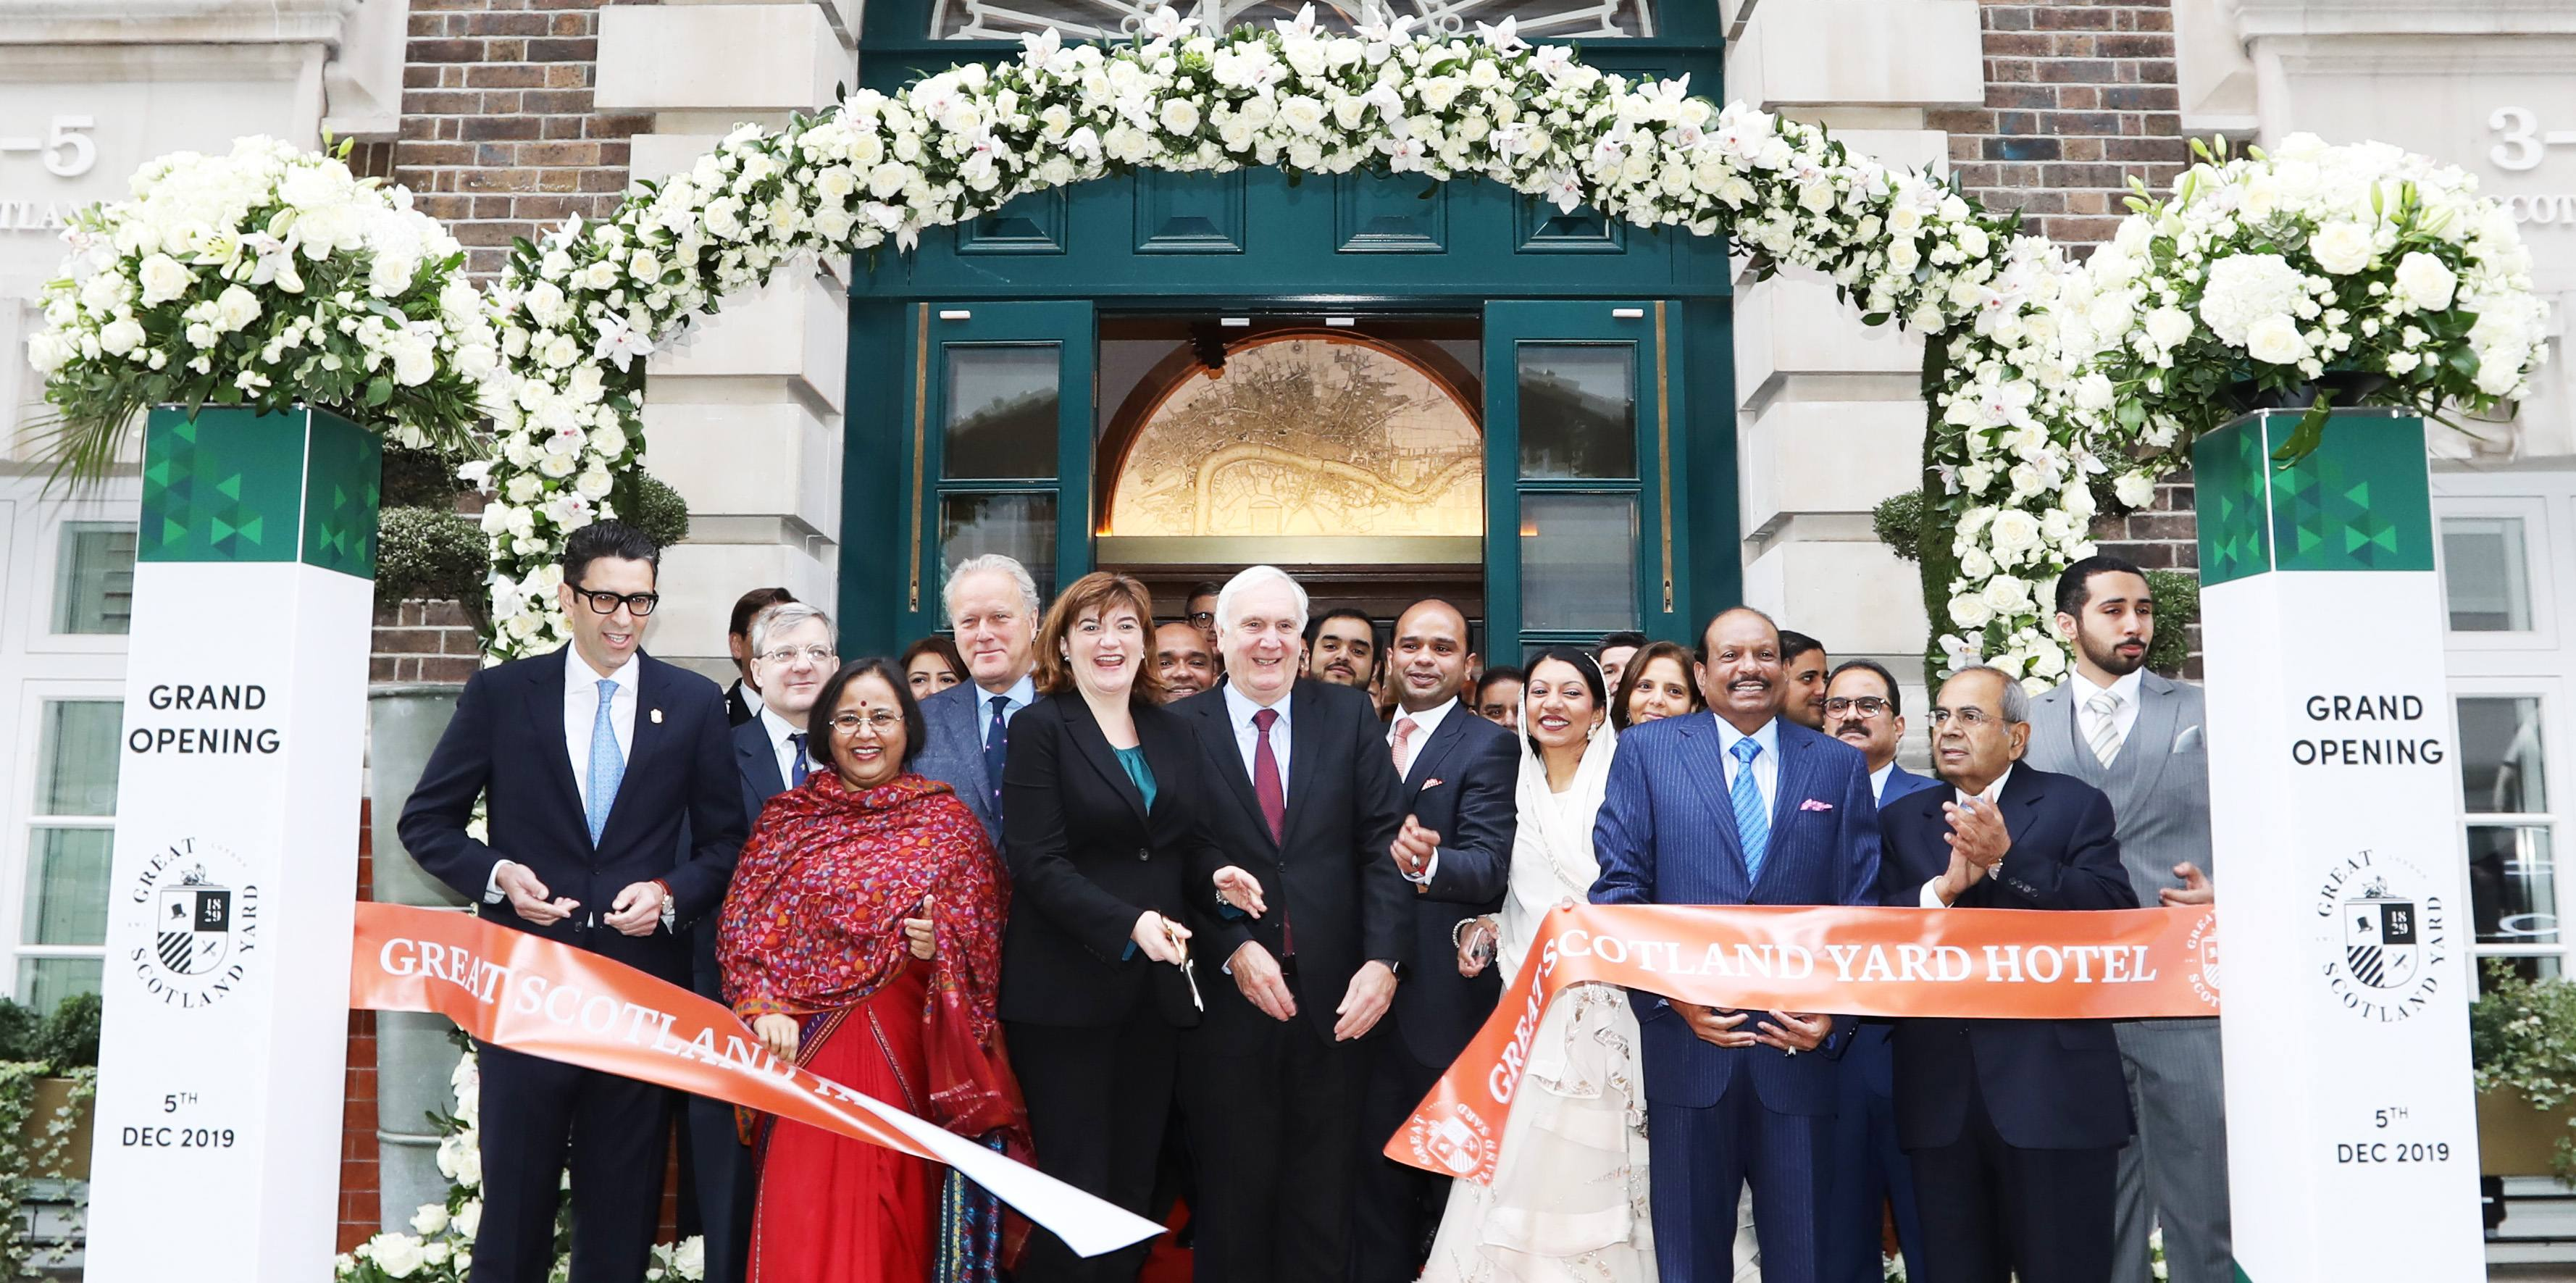 LuLu Group opens iconic Great Scotland Yard hotel in London